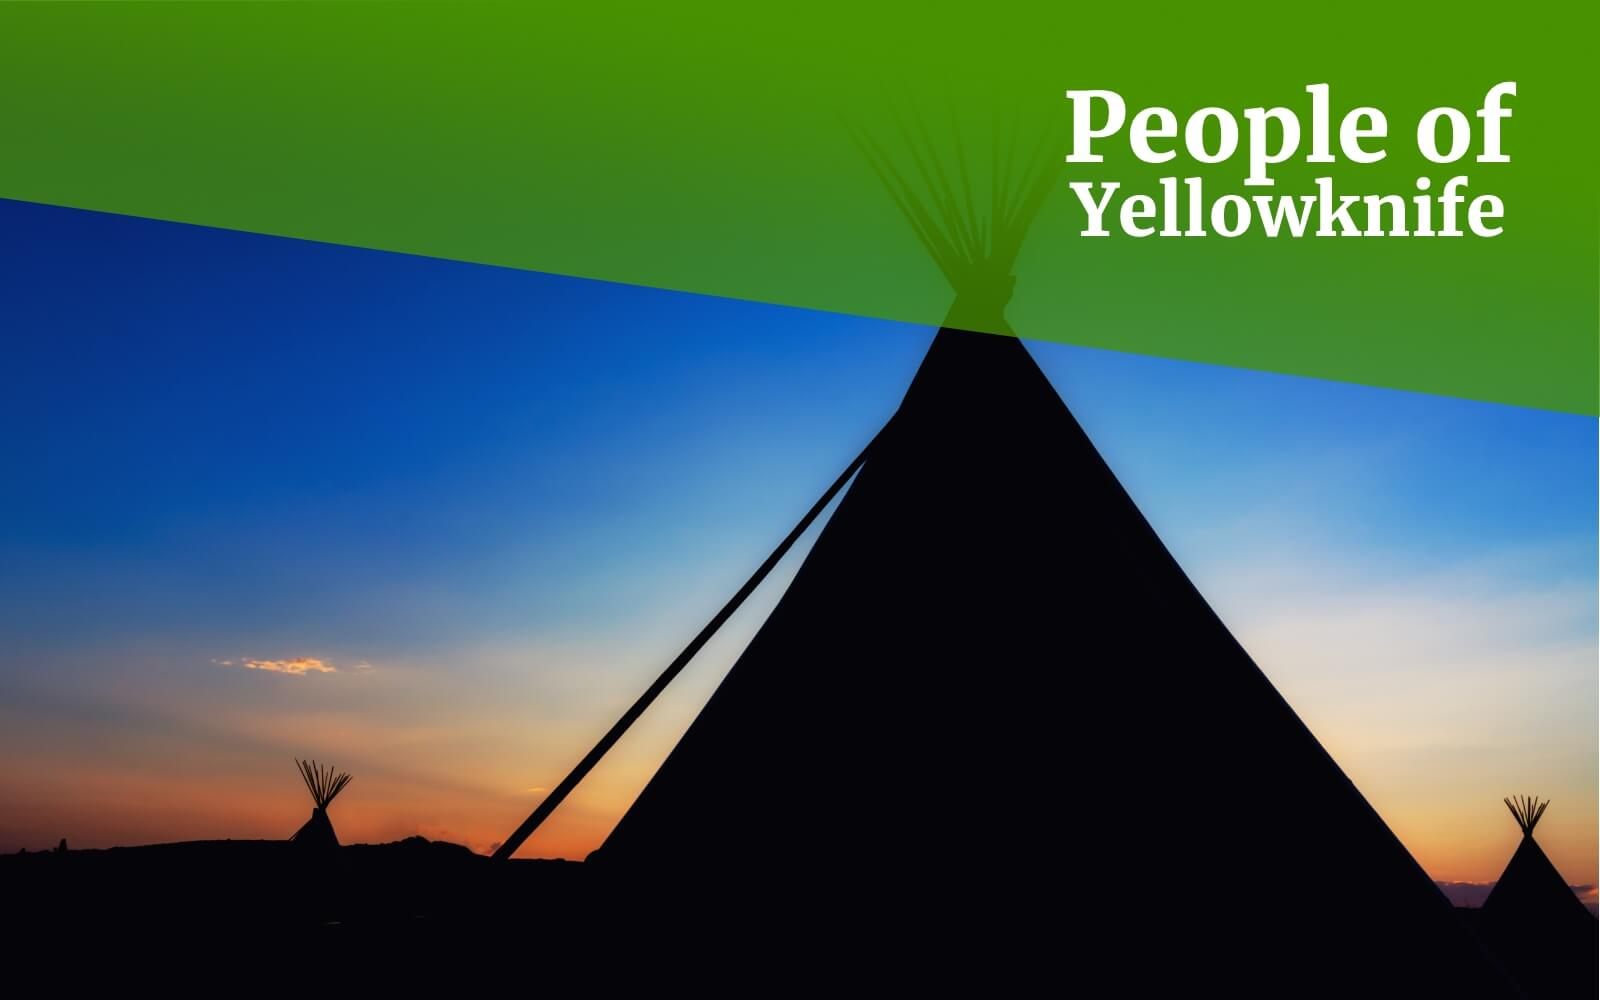 The image shows a teepee during sunset